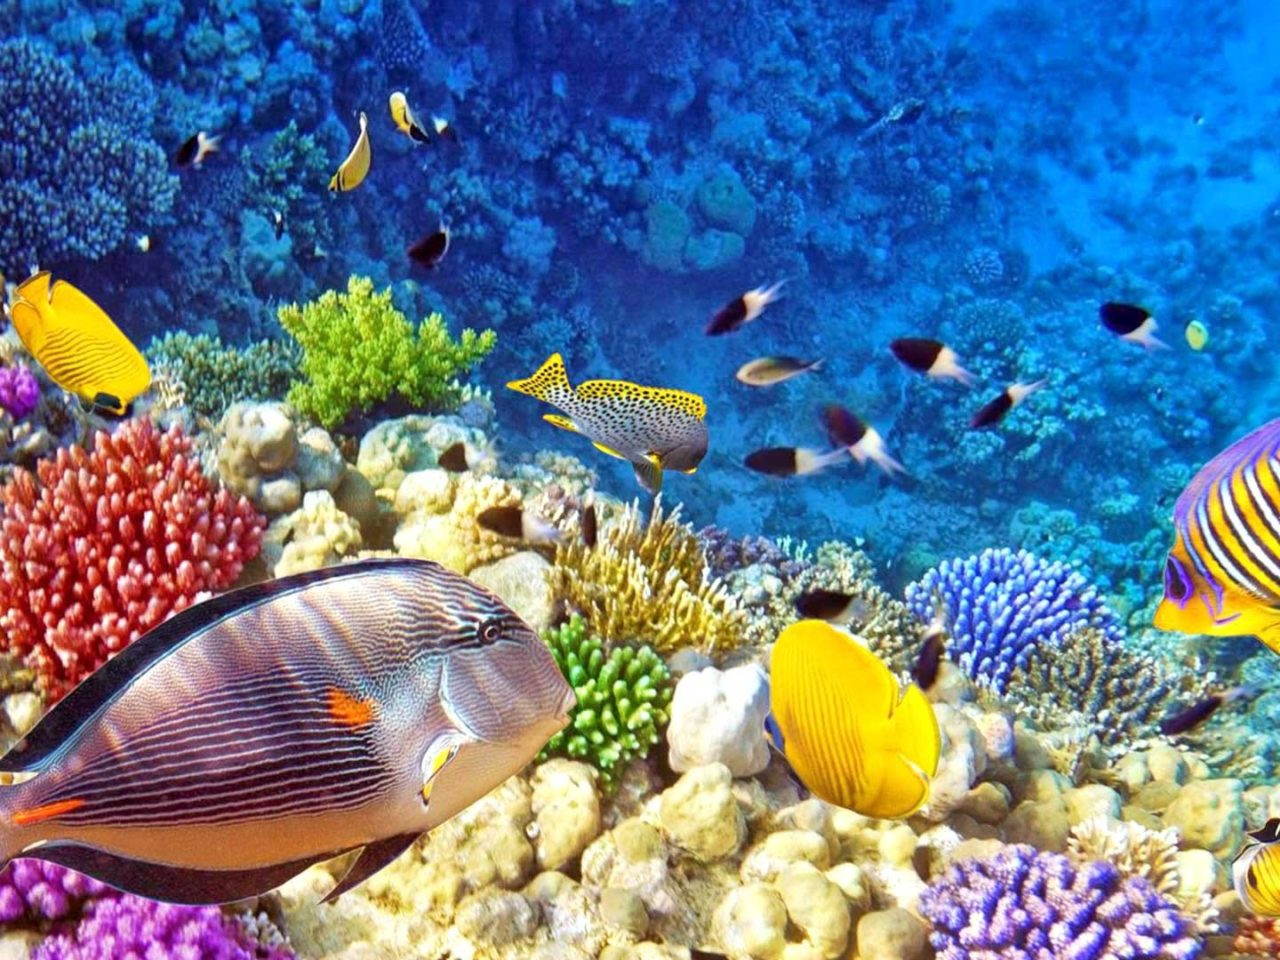 Hawaii Desktop Wallpaper Hd Raja Ampat Underwater Photo Tropical Colorful Fish Coral